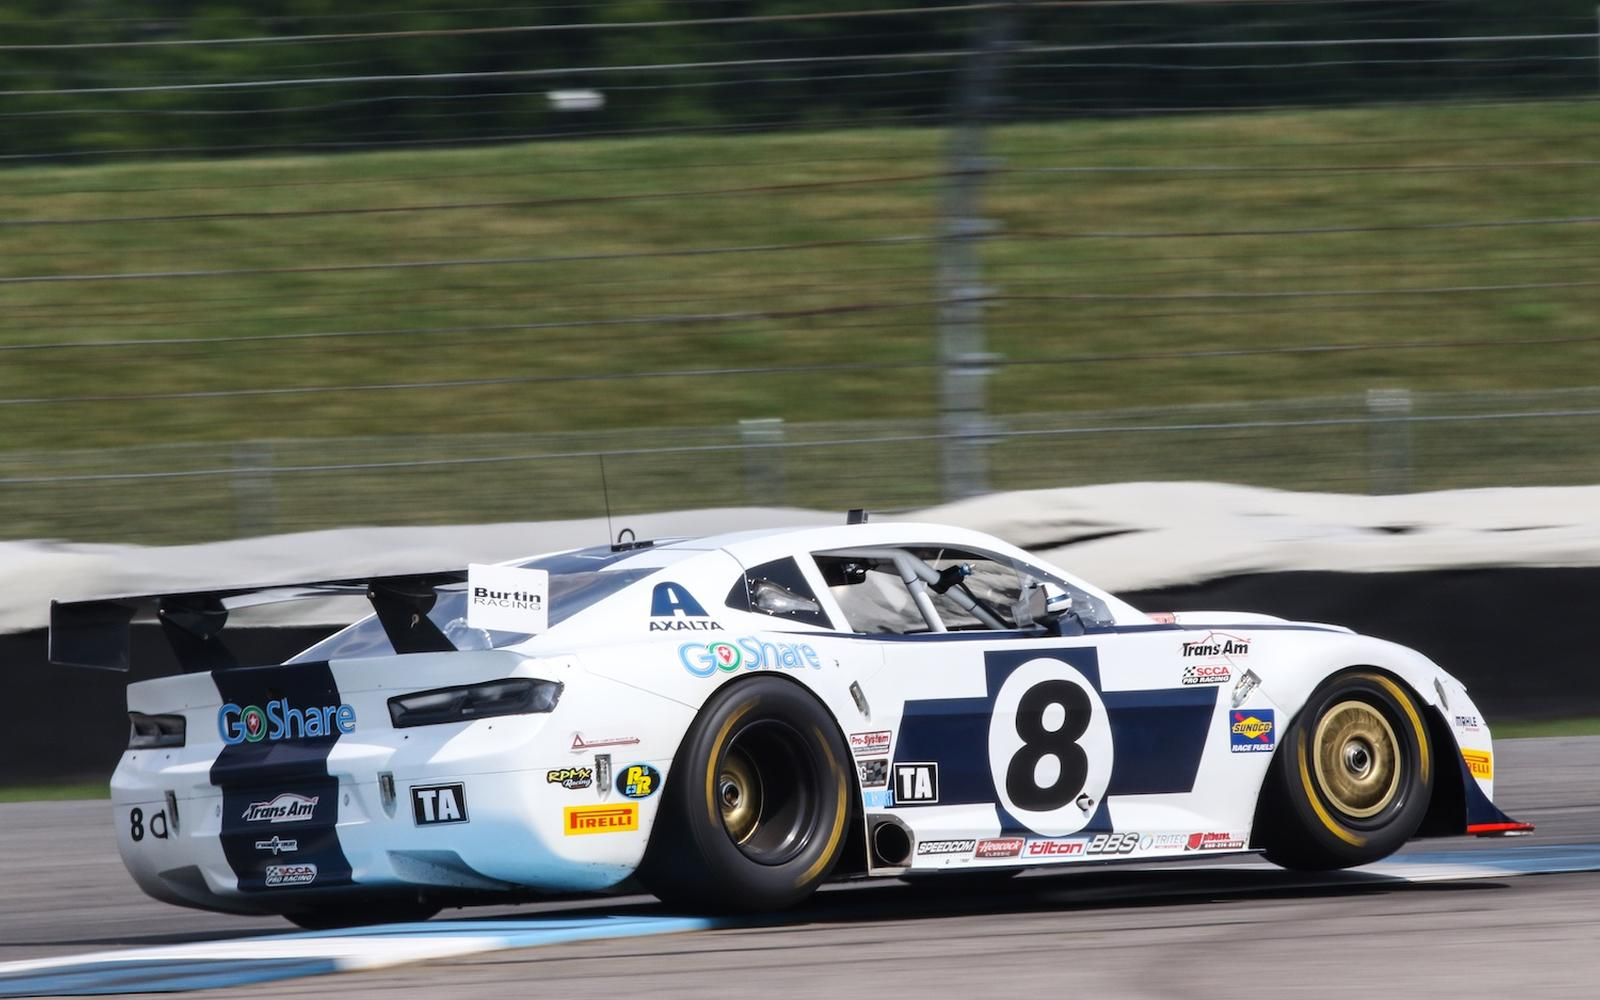 Tomy Drissi Finishes Third In Trans Am at Indianapolis Motor Speedway